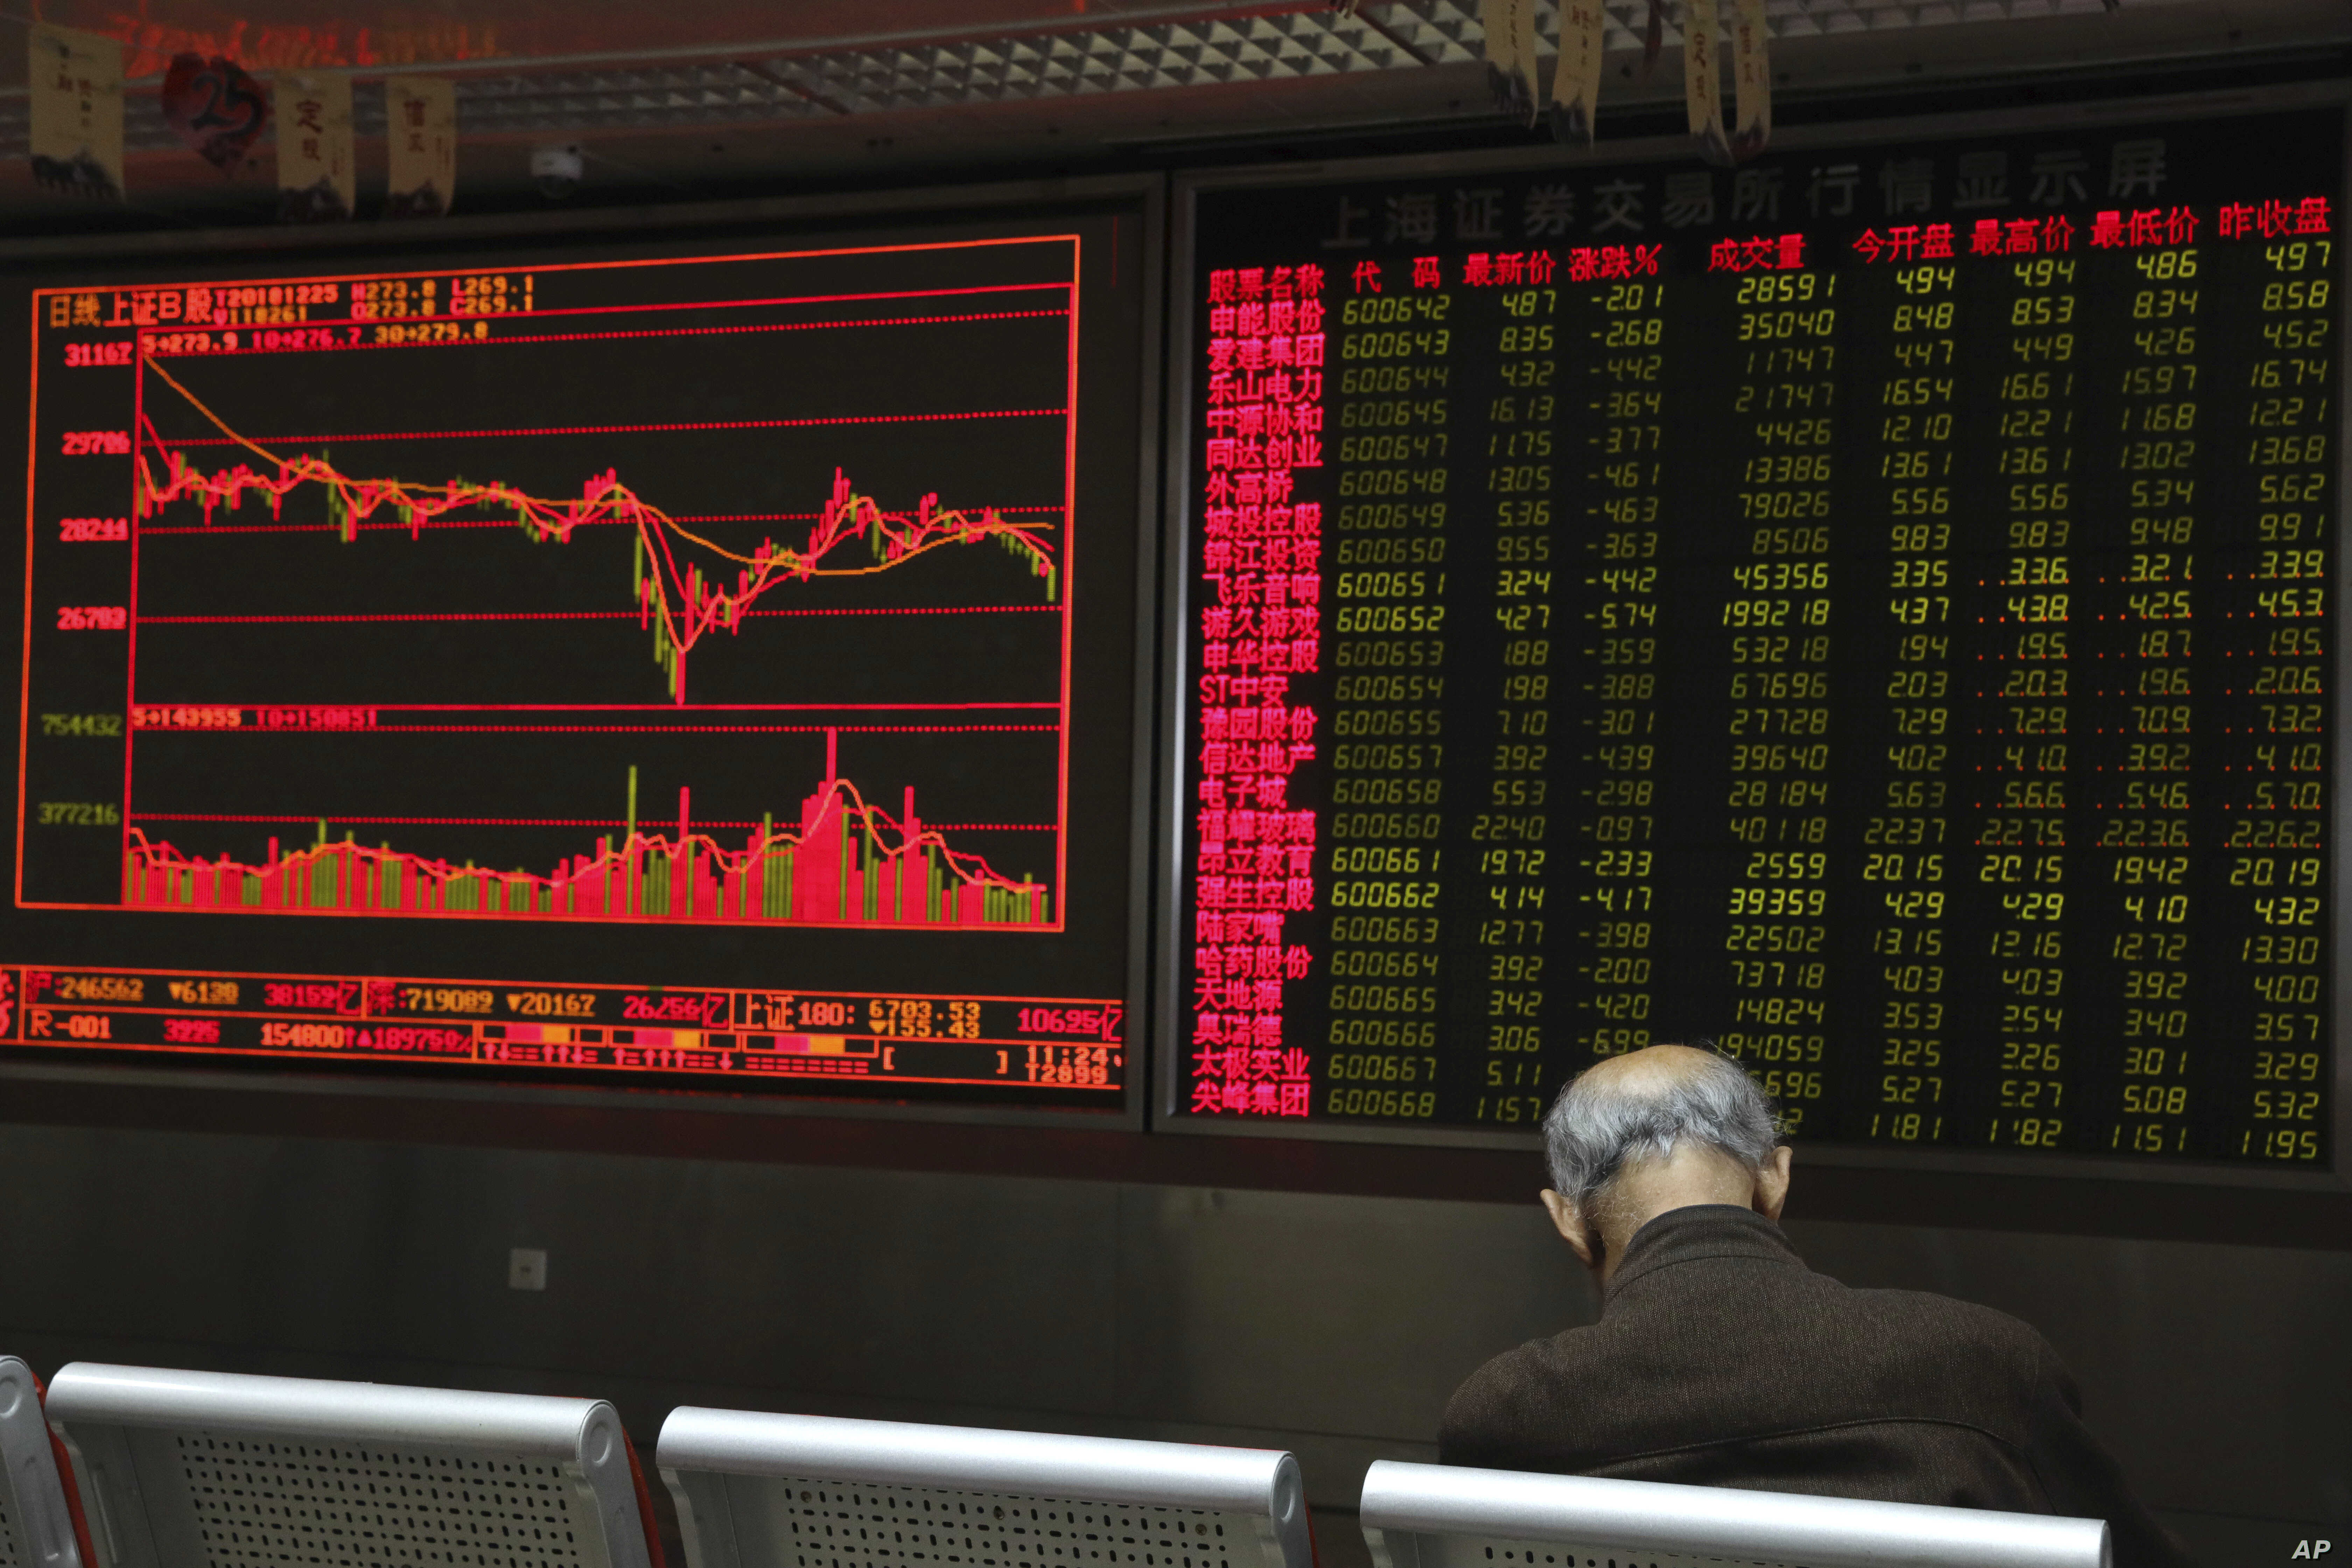 A Chinese man naps at a brokerage in Beijing, China, Dec. 25, 2018. Japanese stocks plunged Tuesday and other Asian markets declined following heavy Wall Street losses triggered by President Donald Trump's attack on the U.S. central bank.